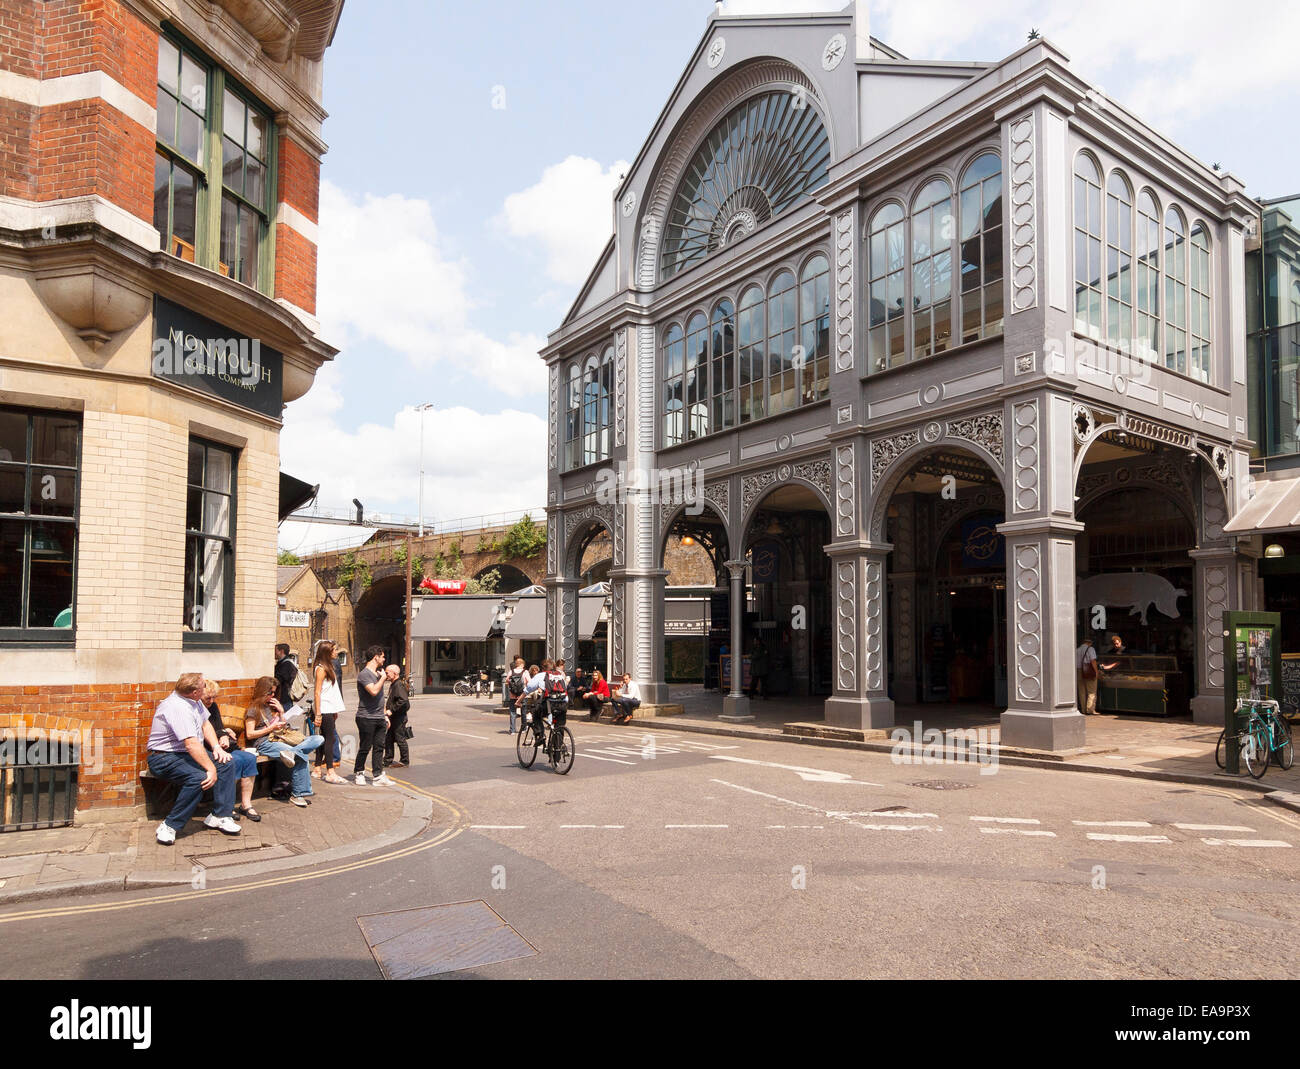 Steel and glass architecture of market hall at Borough Market, London - Stock Image